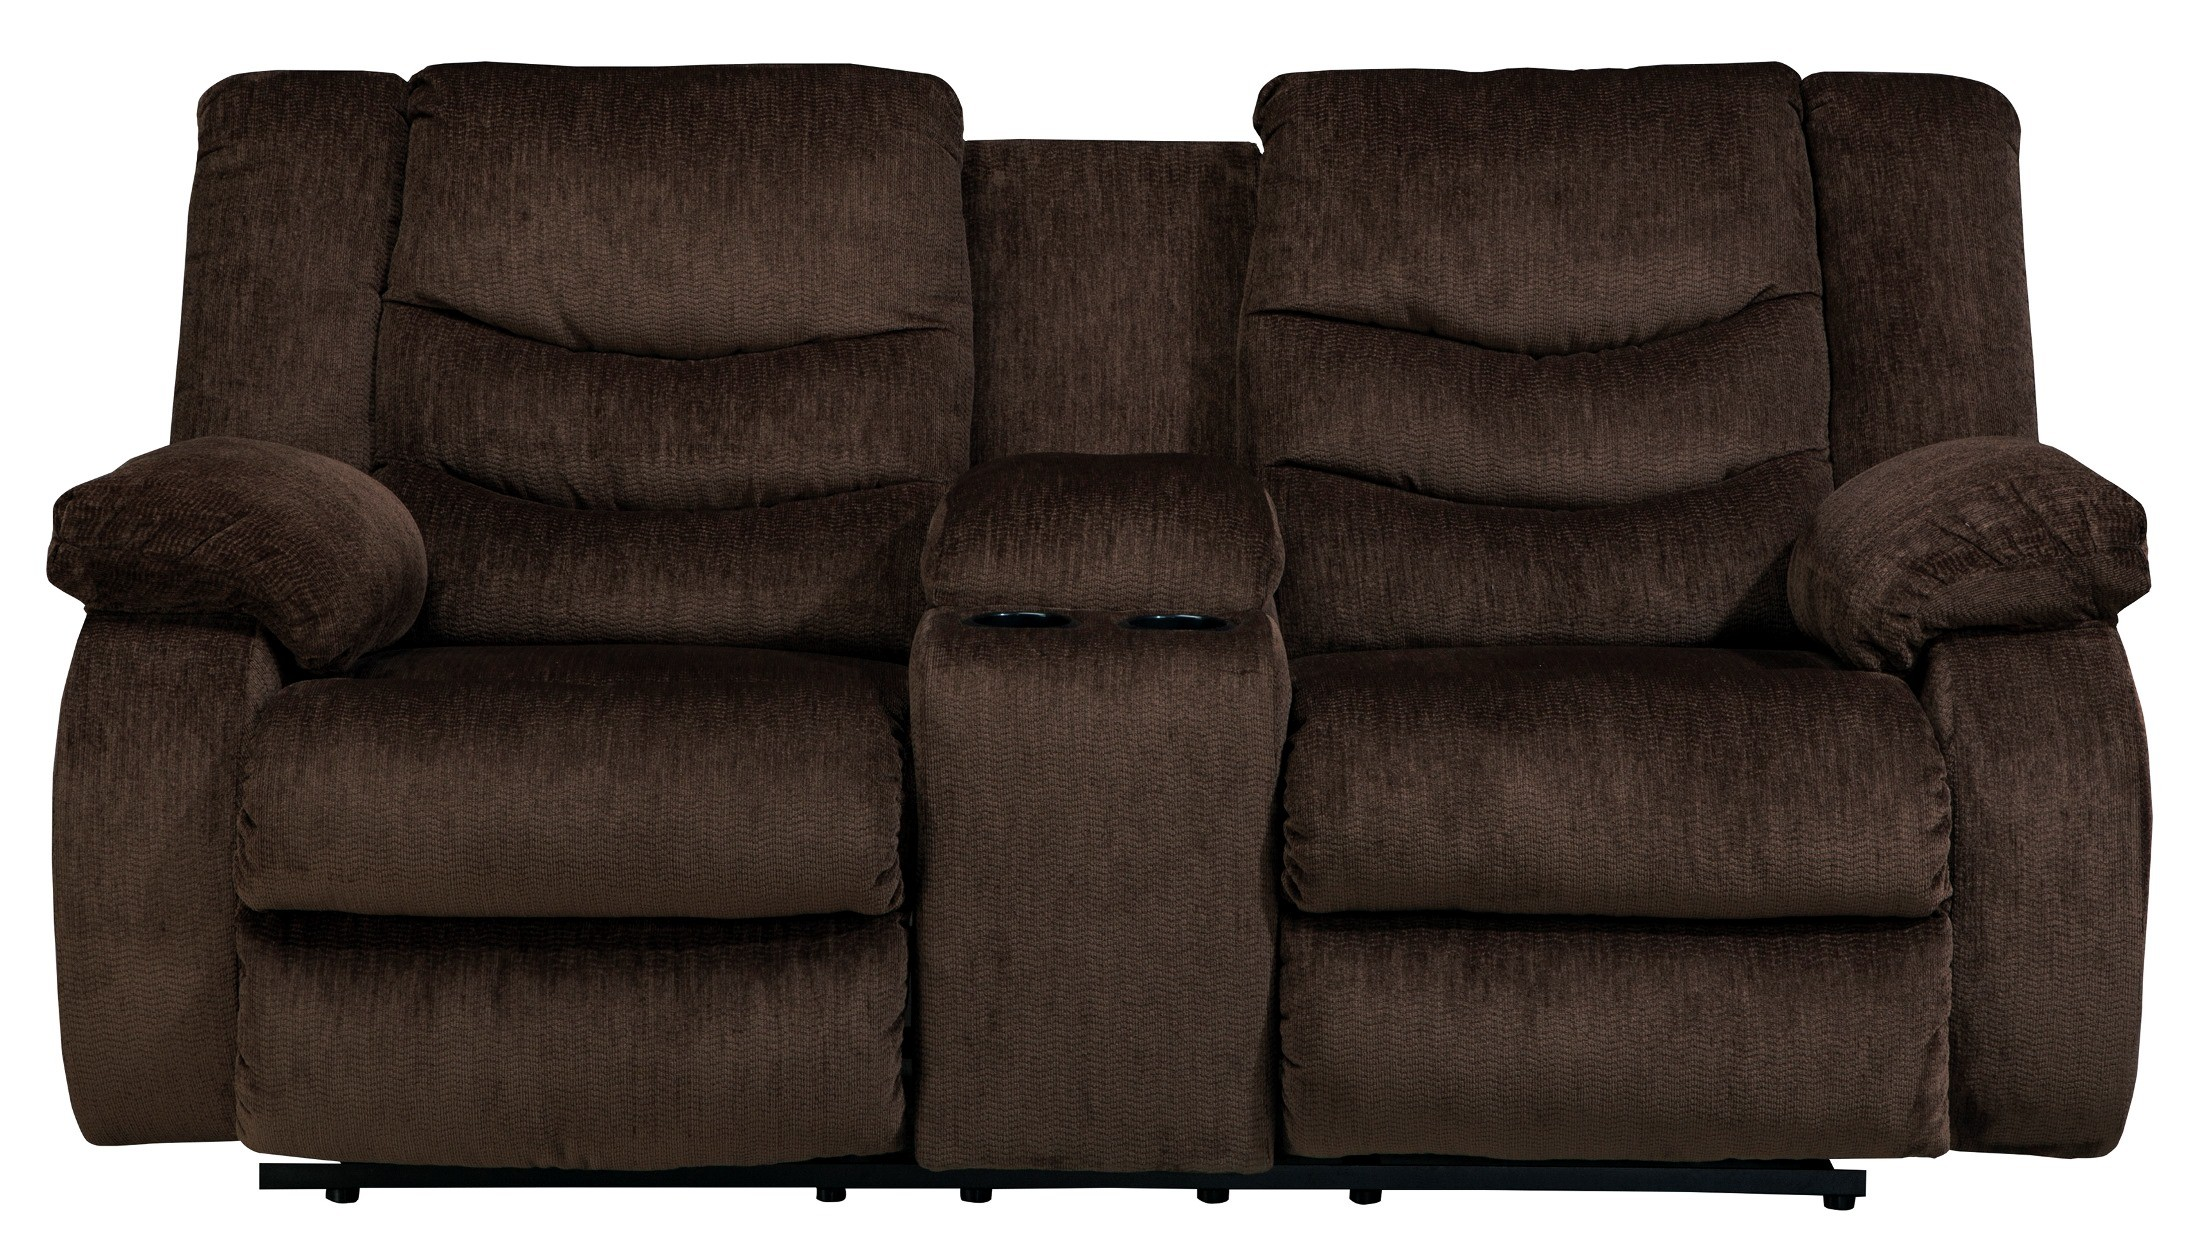 Garek Cocoa Double Reclining Loveseat With Console From Ashley 9200394 Coleman Furniture